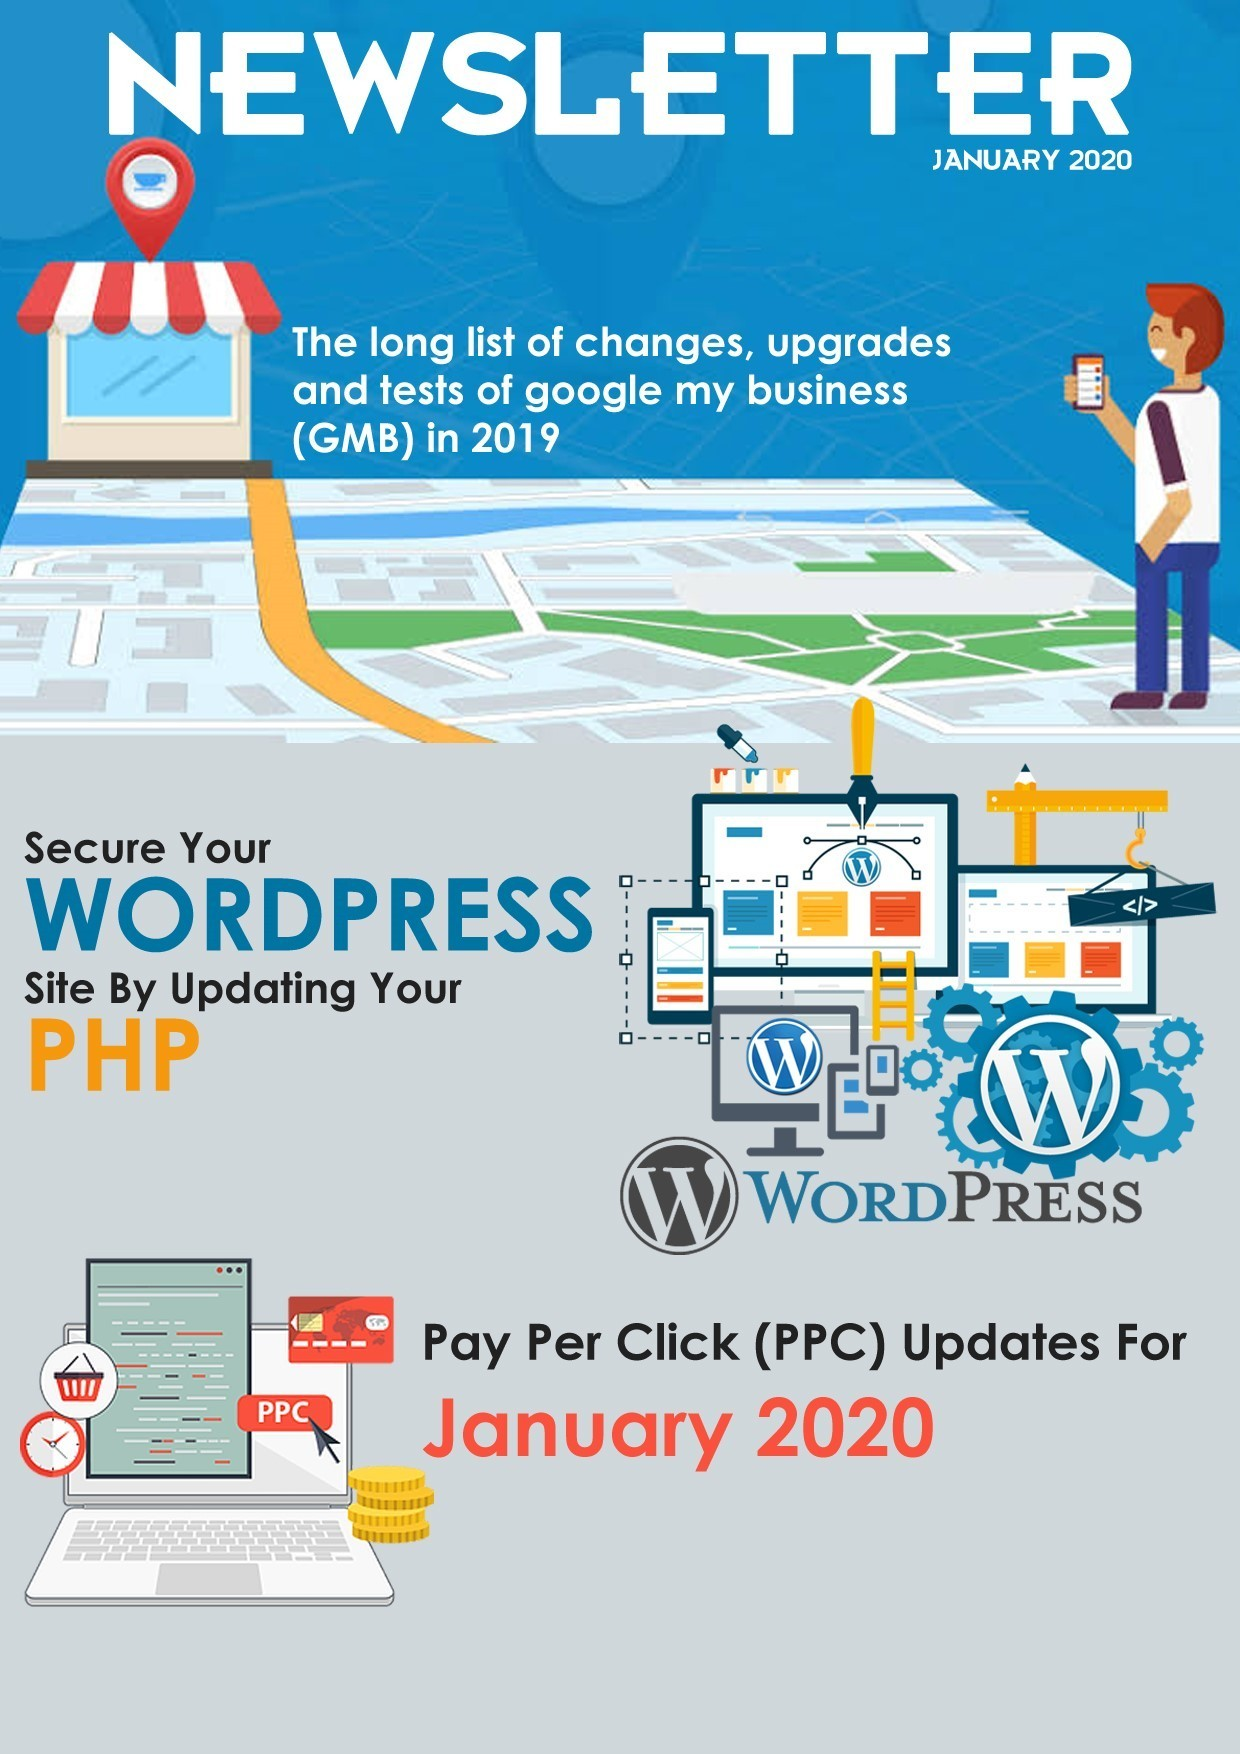 SECURE YOUR WORDPRESS SITE BY UPDATING YOUR PHP – Newsletter January 2020, THE LONG LIST OF CHANGES, UPGRADES AND TESTS OF GOOGLE MY BUSINESS (GMB) IN 2019, GOOGLE NOW DISPLAYS 'REQUEST QUOTES' BUTTON ABOVE MOBILE LOCAL RESULTS, SECURE YOUR WORDPRESS SITE BY UPDATING YOUR PHP, PAY PER CLICK (PPC) UPDATES FOR JANUARY 2020, online marketing articles, online marketing courses, seo meaning, seo definition, how to grow my business online, what is digital marketing, strategies to promote business online, google analytics, best marketing courses, online marketing articles, online marketing courses, online business idea, how to make big money online, how to earn money online, check google rank, how to promote business using google, what is digital marketing, strategies to promote business online, tips to become succecssful entrepreneurs, basic seo, how to get positive reviews for your business, how to make big money online, how to earn money online, check google rank, how to promote business using google, what is digital marketing, strategies to promote business online, tips to become succecssful entrepreneurs, best online marketing course, free online marketing course, free online marketing training, how to market my business in social media,tips to become successful entrepreneurs, pinterest account creation, social media marketing benefits, what is digital marketing, strategies to promote business online, google analytics, how to market my business in social media,tips to become successful entrepreneursSECURE YOUR WORDPRESS SITE BY UPDATING YOUR PHP – Newsletter January 2020, THE LONG LIST OF CHANGES, UPGRADES AND TESTS OF GOOGLE MY BUSINESS (GMB) IN 2019, GOOGLE NOW DISPLAYS 'REQUEST QUOTES' BUTTON ABOVE MOBILE LOCAL RESULTS, SECURE YOUR WORDPRESS SITE BY UPDATING YOUR PHP, PAY PER CLICK (PPC) UPDATES FOR JANUARY 2020, online marketing articles, online marketing courses, seo meaning, seo definition, how to grow my business online, what is digital marketing, strategies to